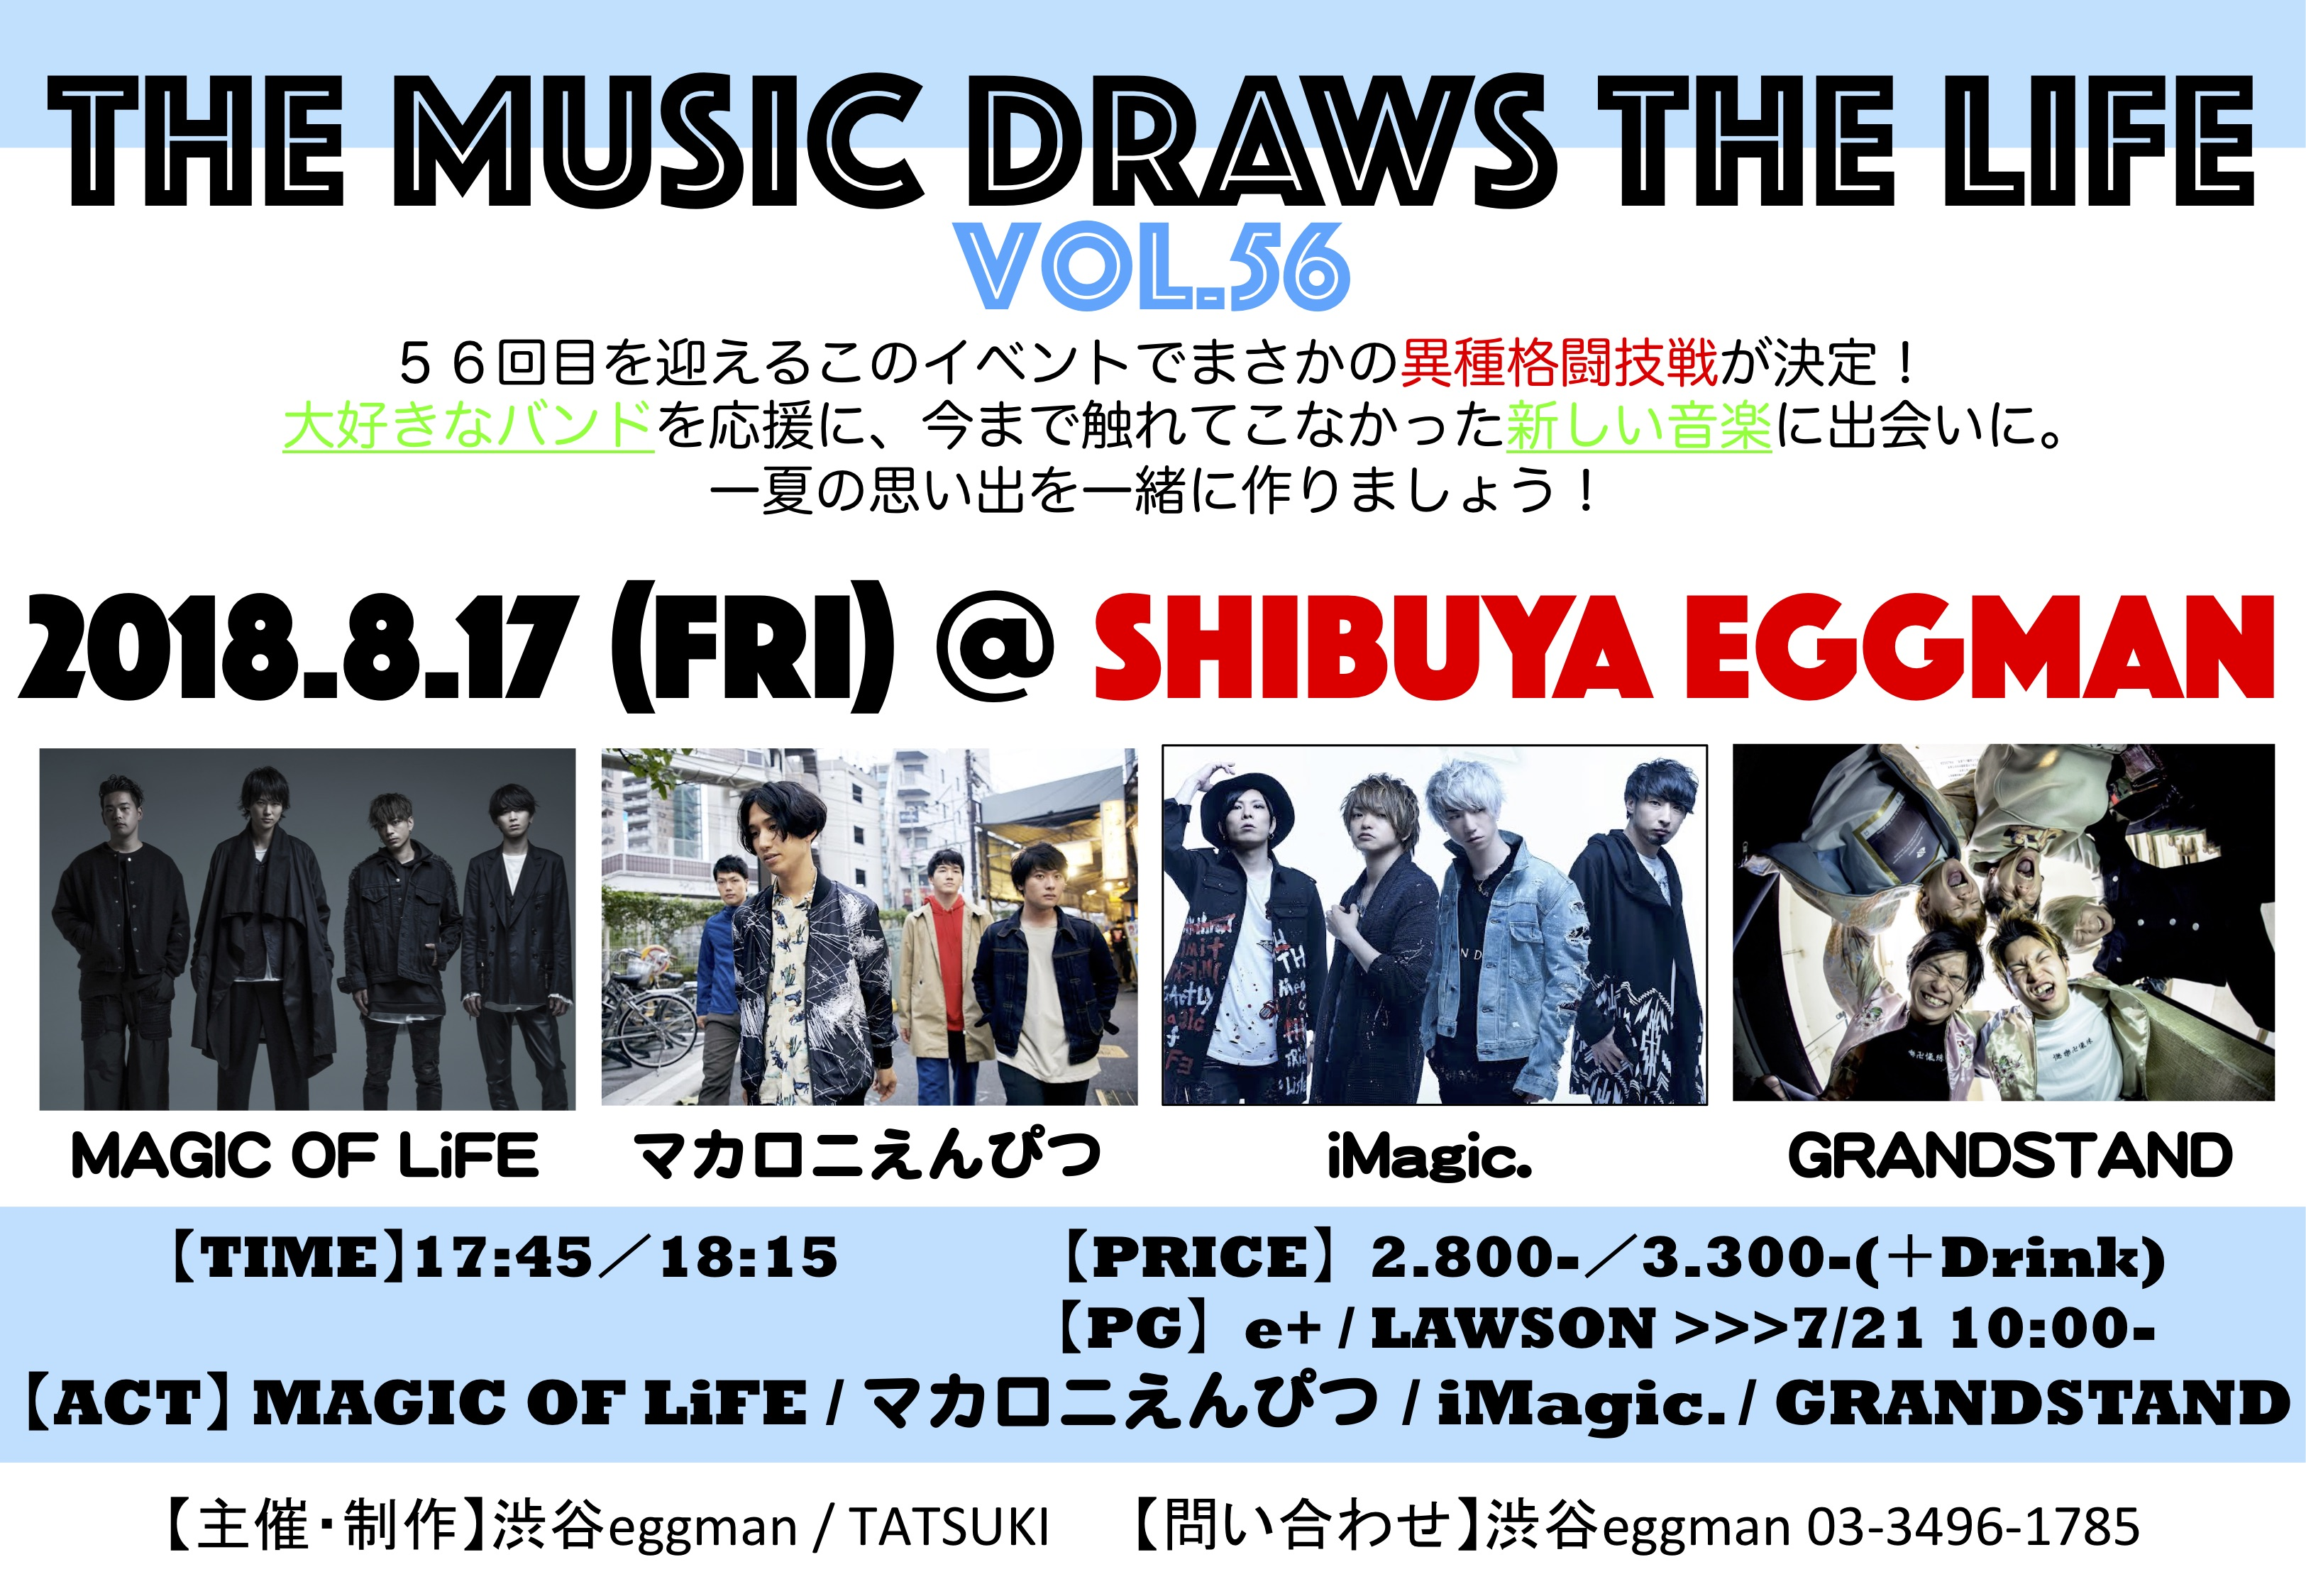 The Music Draws The Life Vol.56